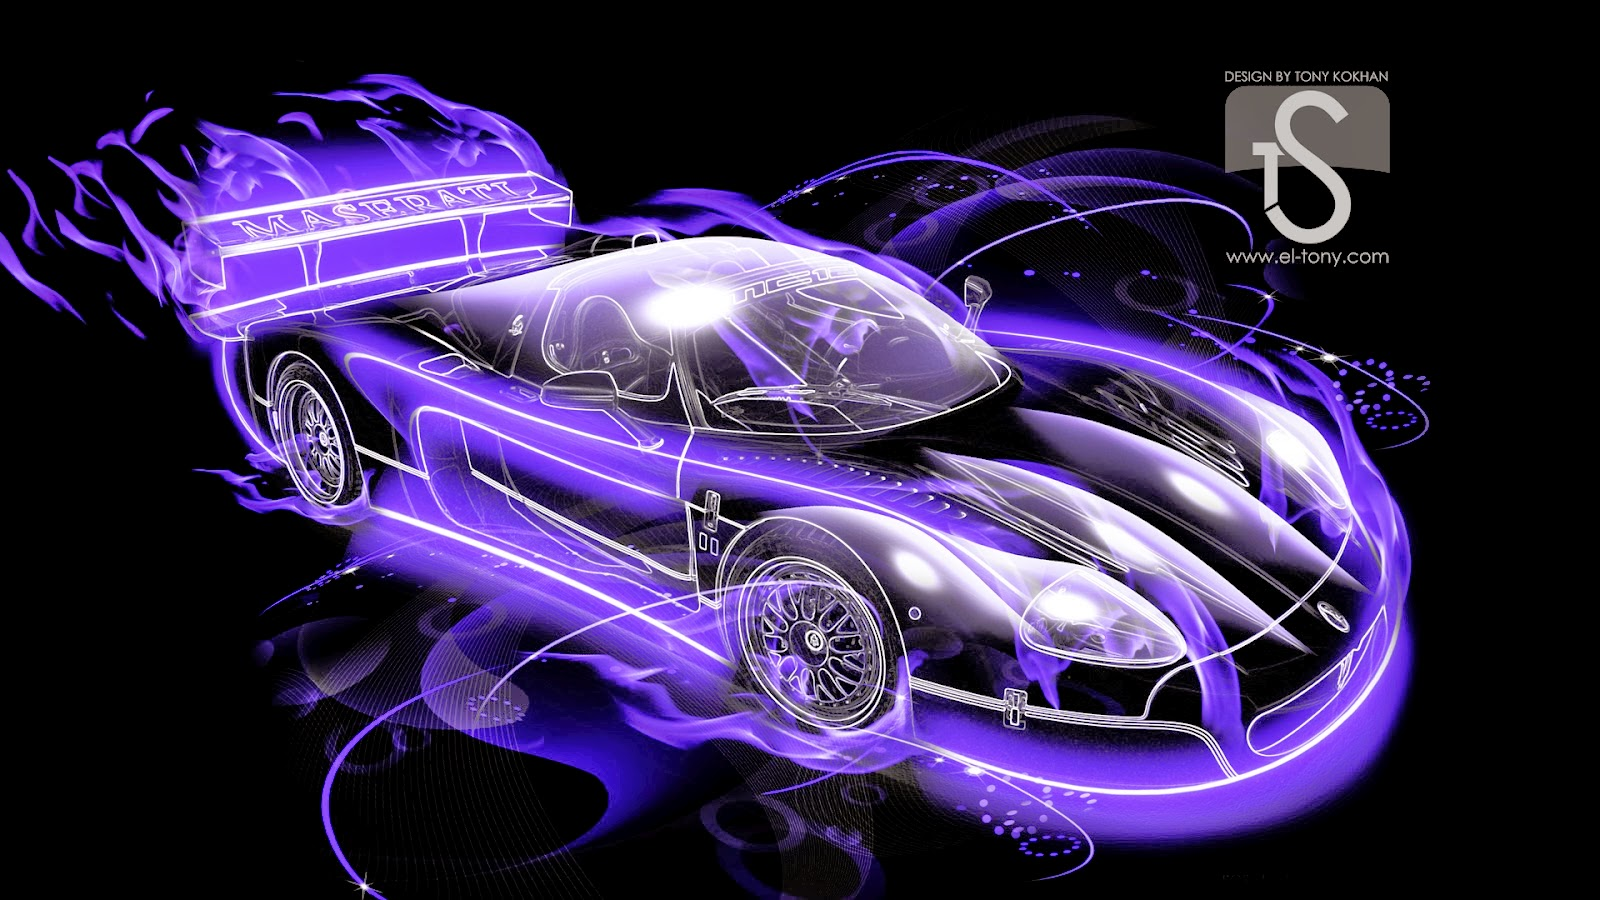 Cars View: Fire 3d wallpapers of cars for desktop